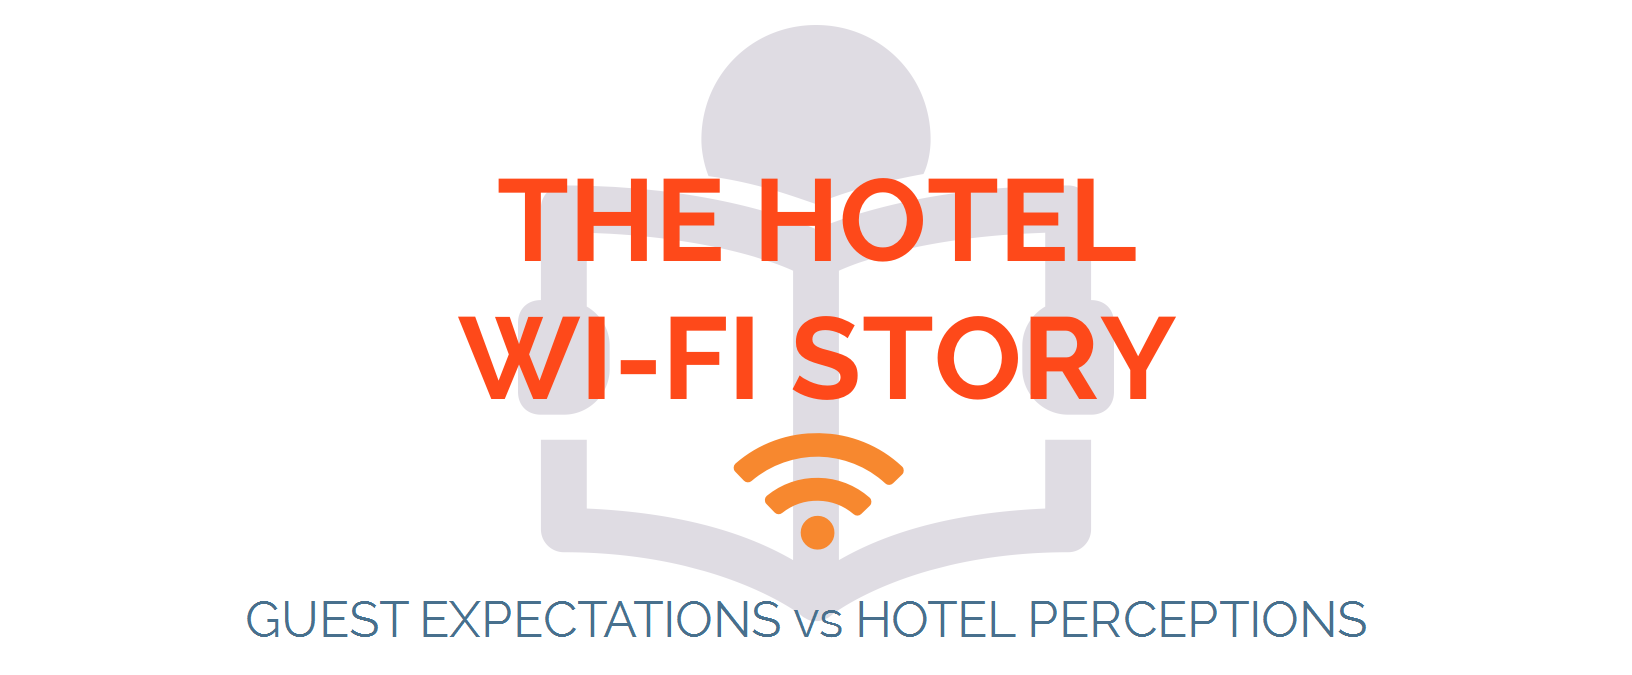 hotel-wifi-story-infographic-header.png